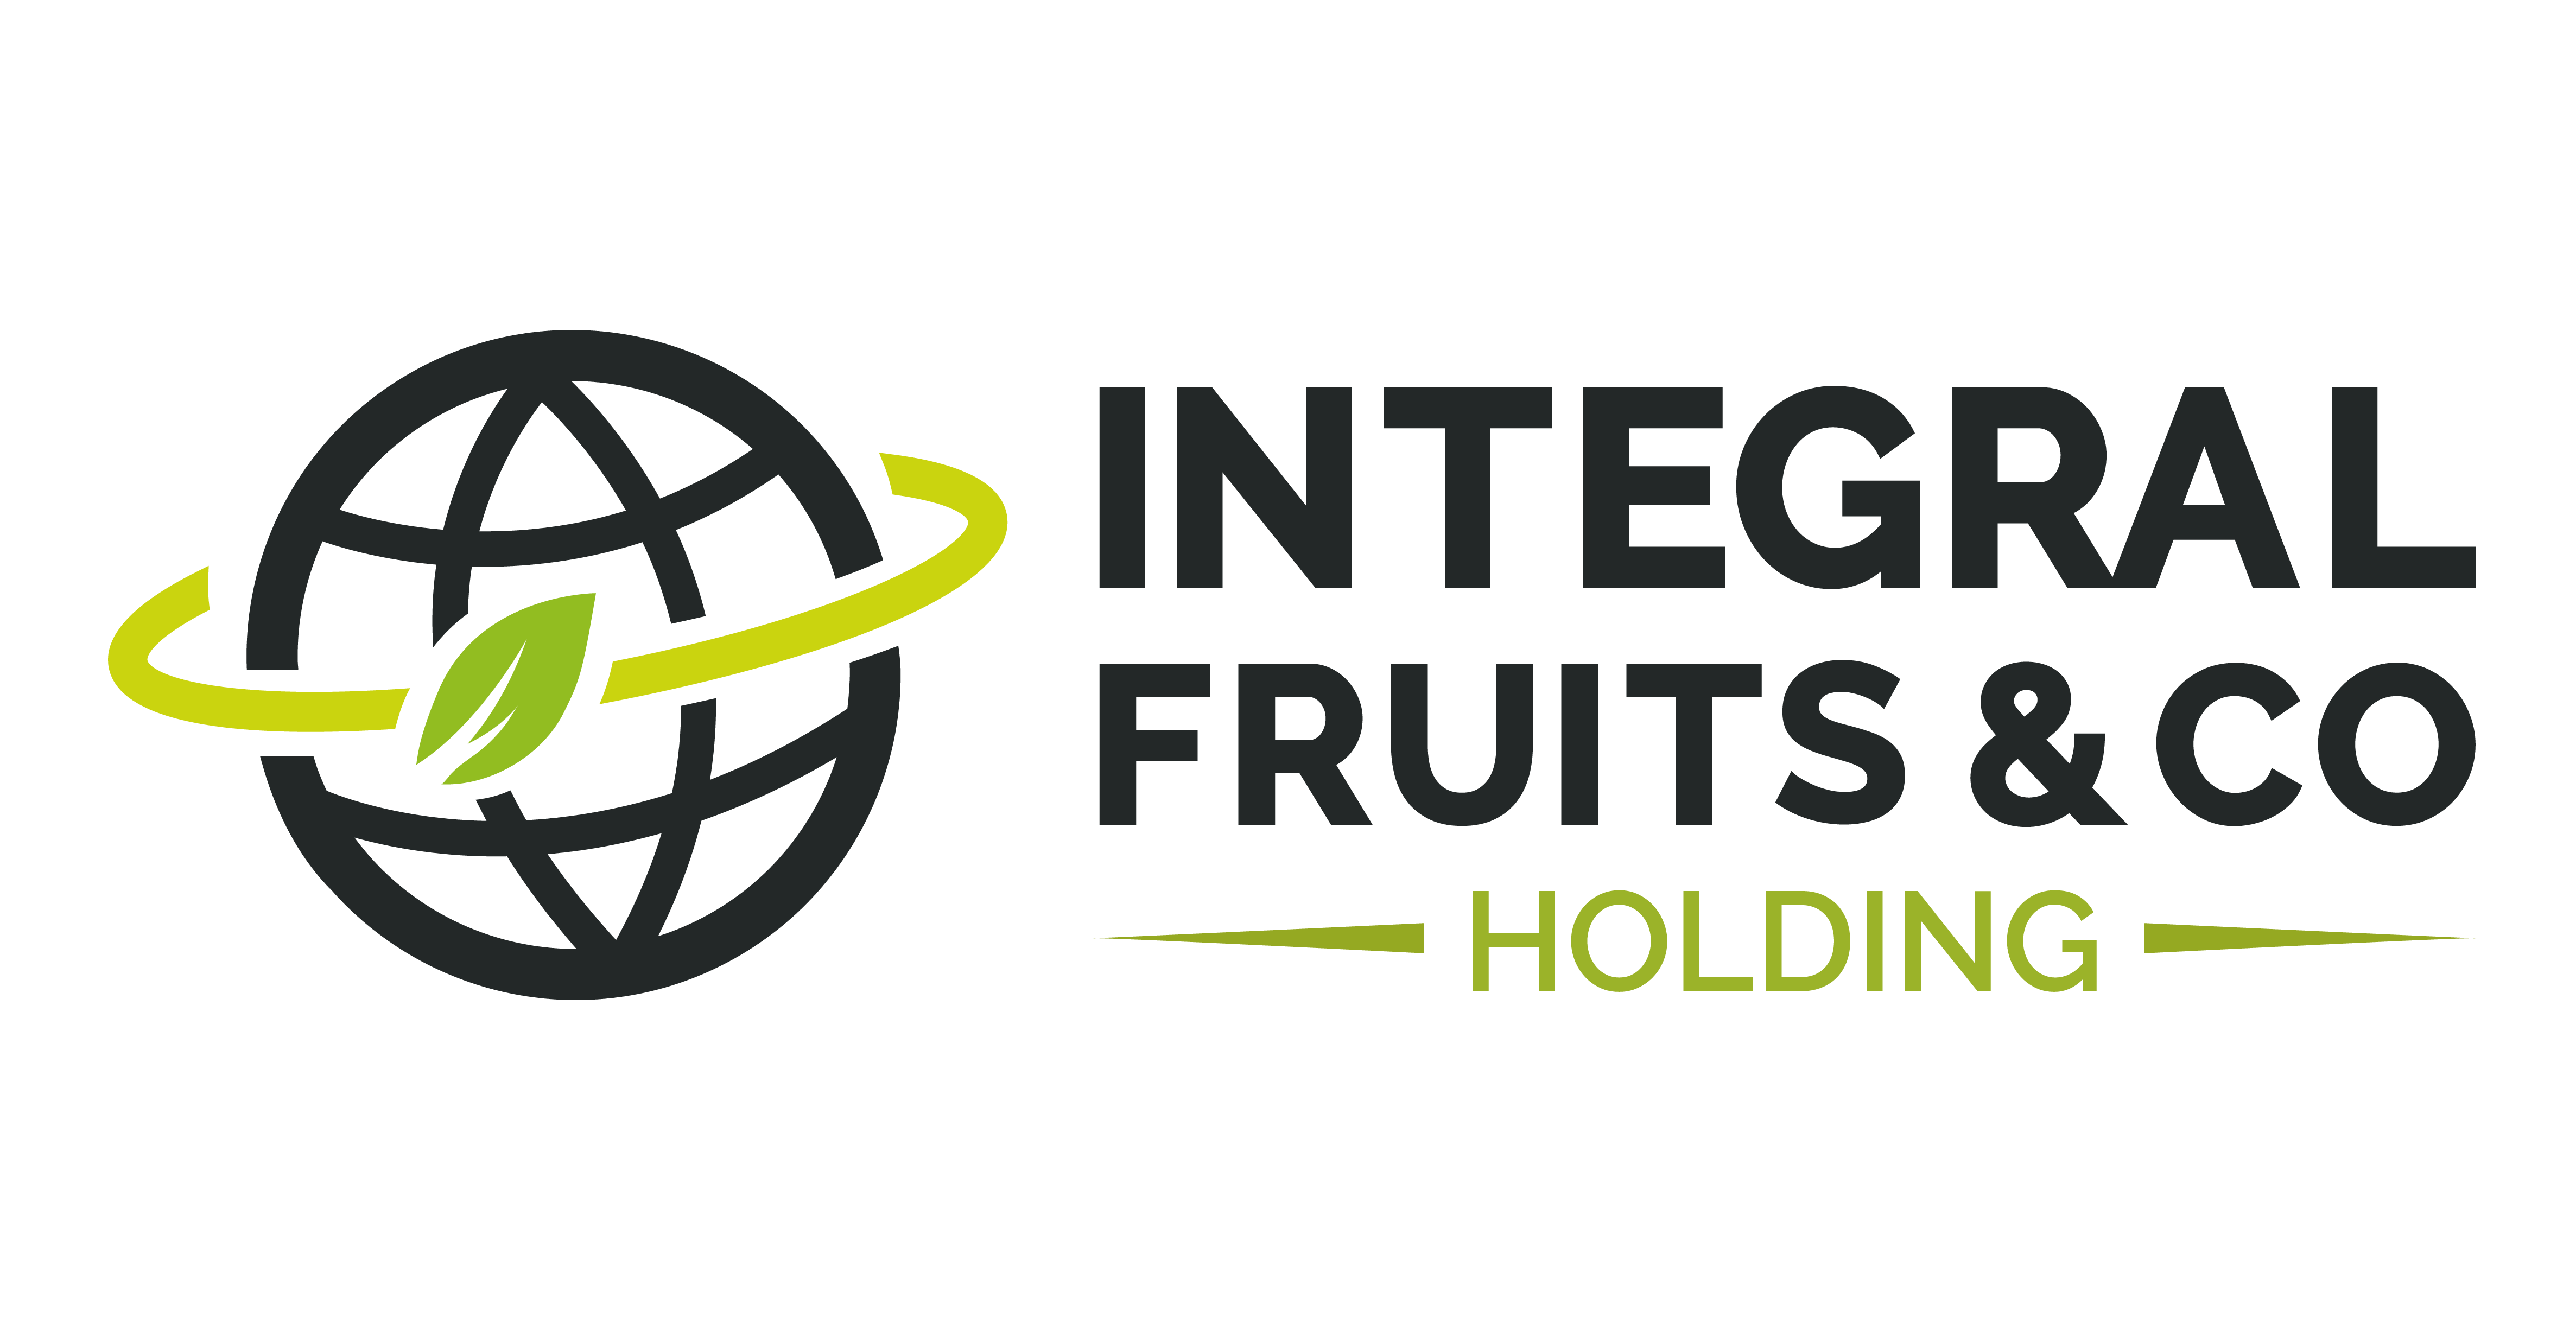 CENTROAMÉRICA, LA NUEVA CASA DE INTEGRAL FRUITS & CO